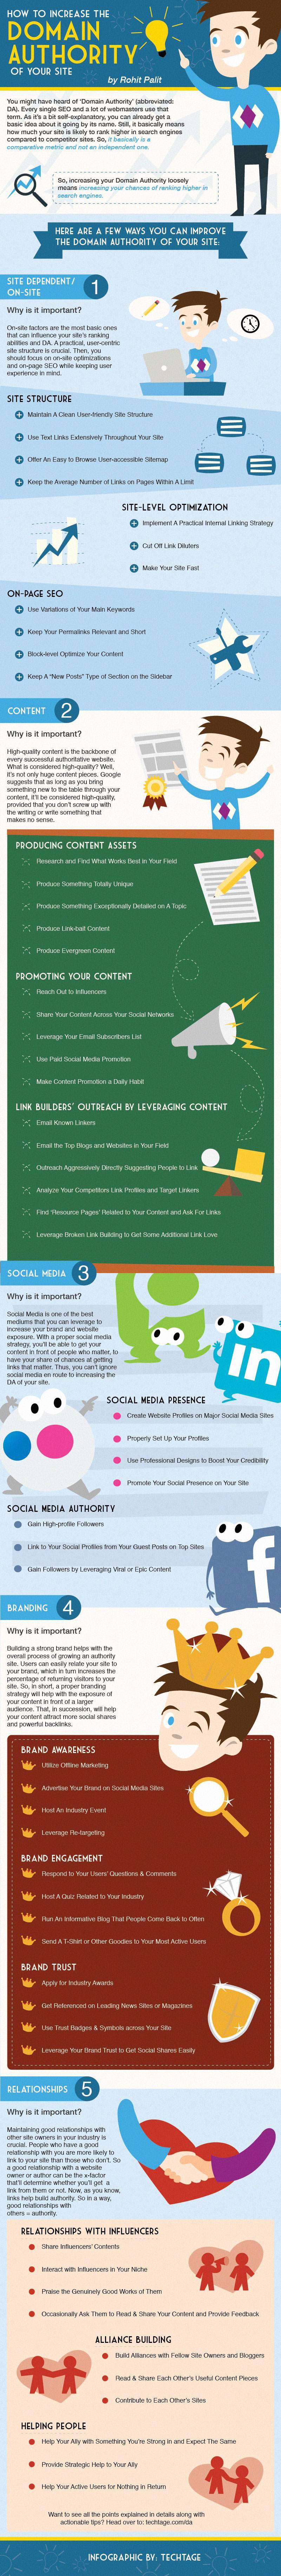 boosting domain authority infographic